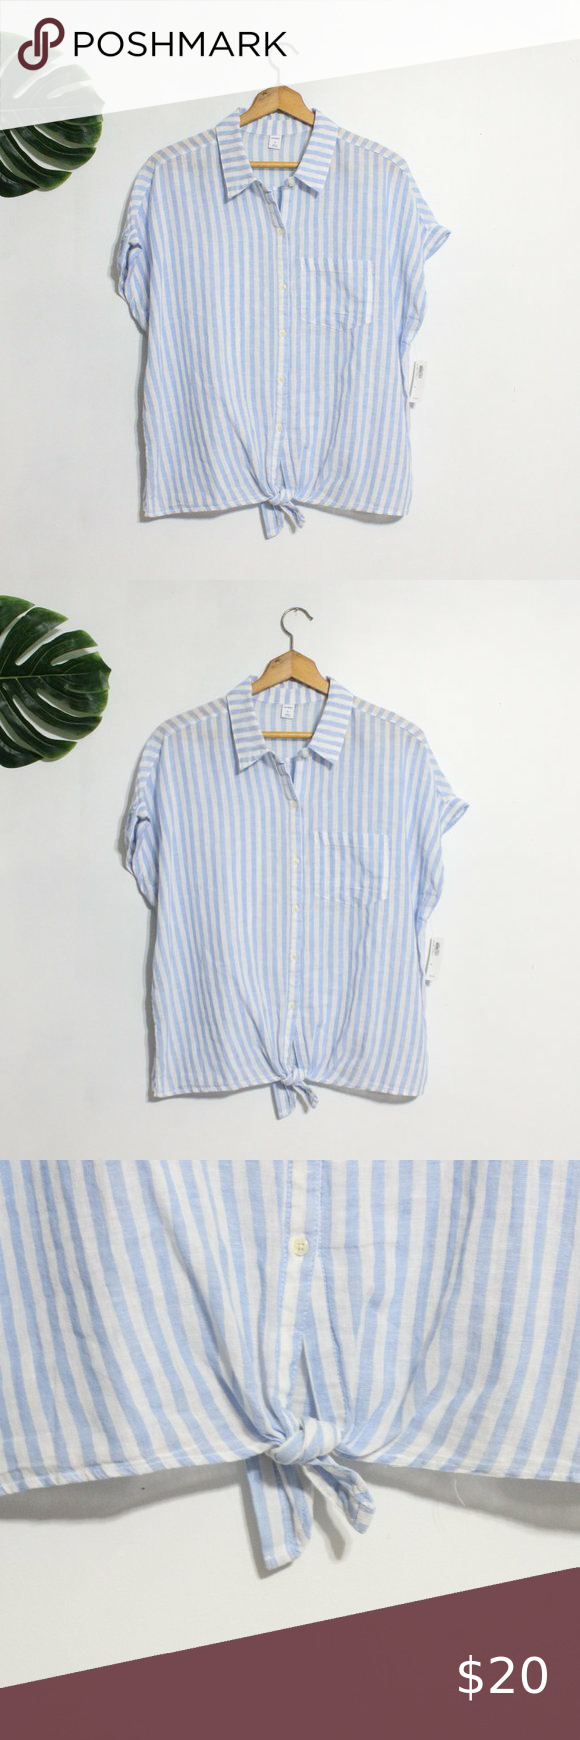 Old Navy Blue White Stripe Linen Button Shirt Xl Old Navy Blue White Striped Linen Short Sleeve Button Down Shirt Striped Linen White Stripe Blue And White